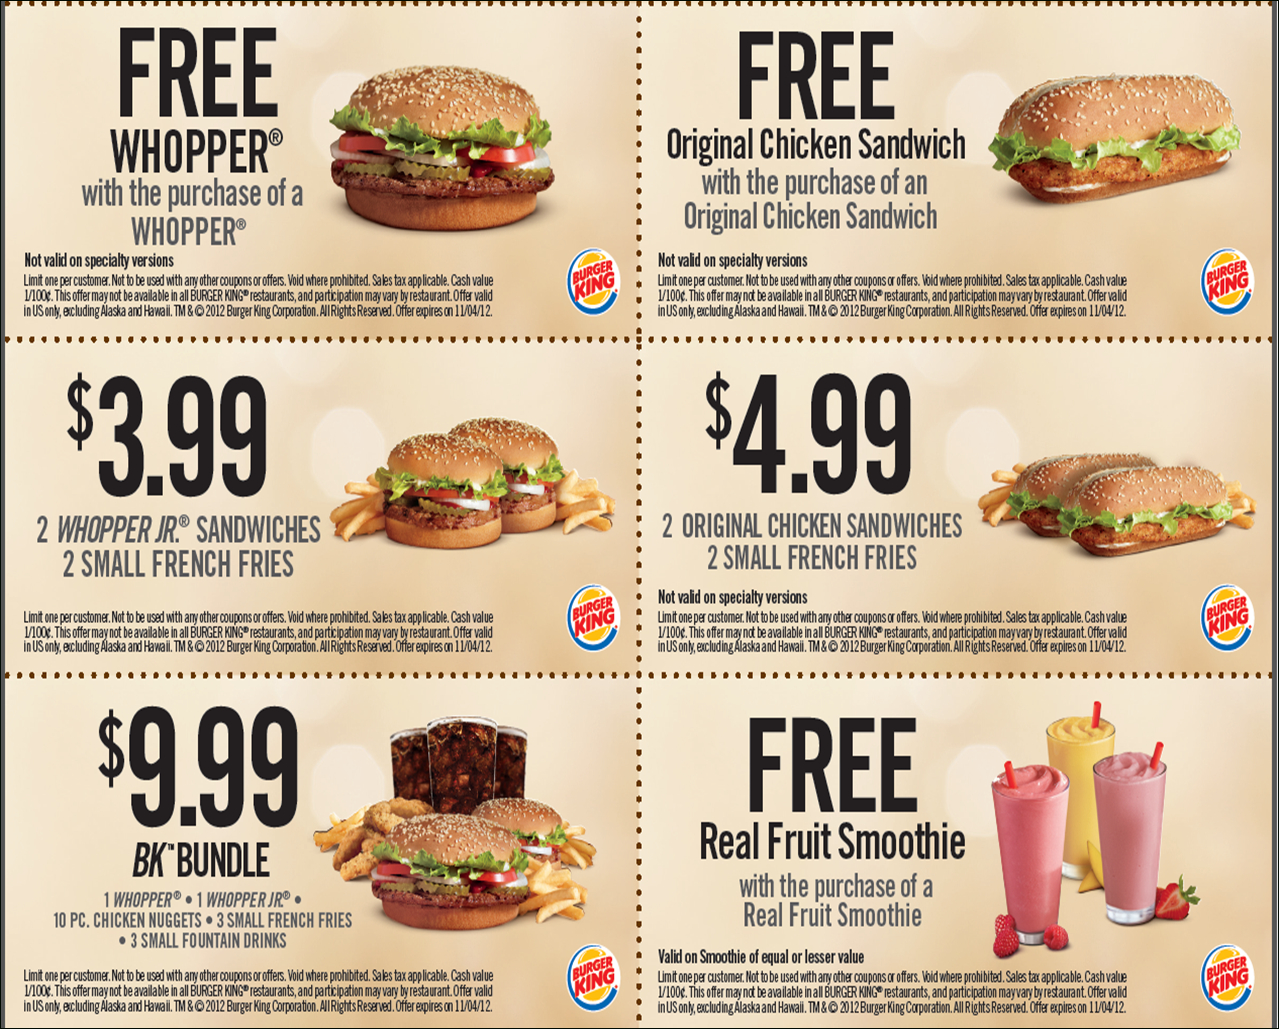 Mcdonalds Burgers Coupon Codes | Coupon Codes Blog - Free Printable Mcdonalds Coupons Online